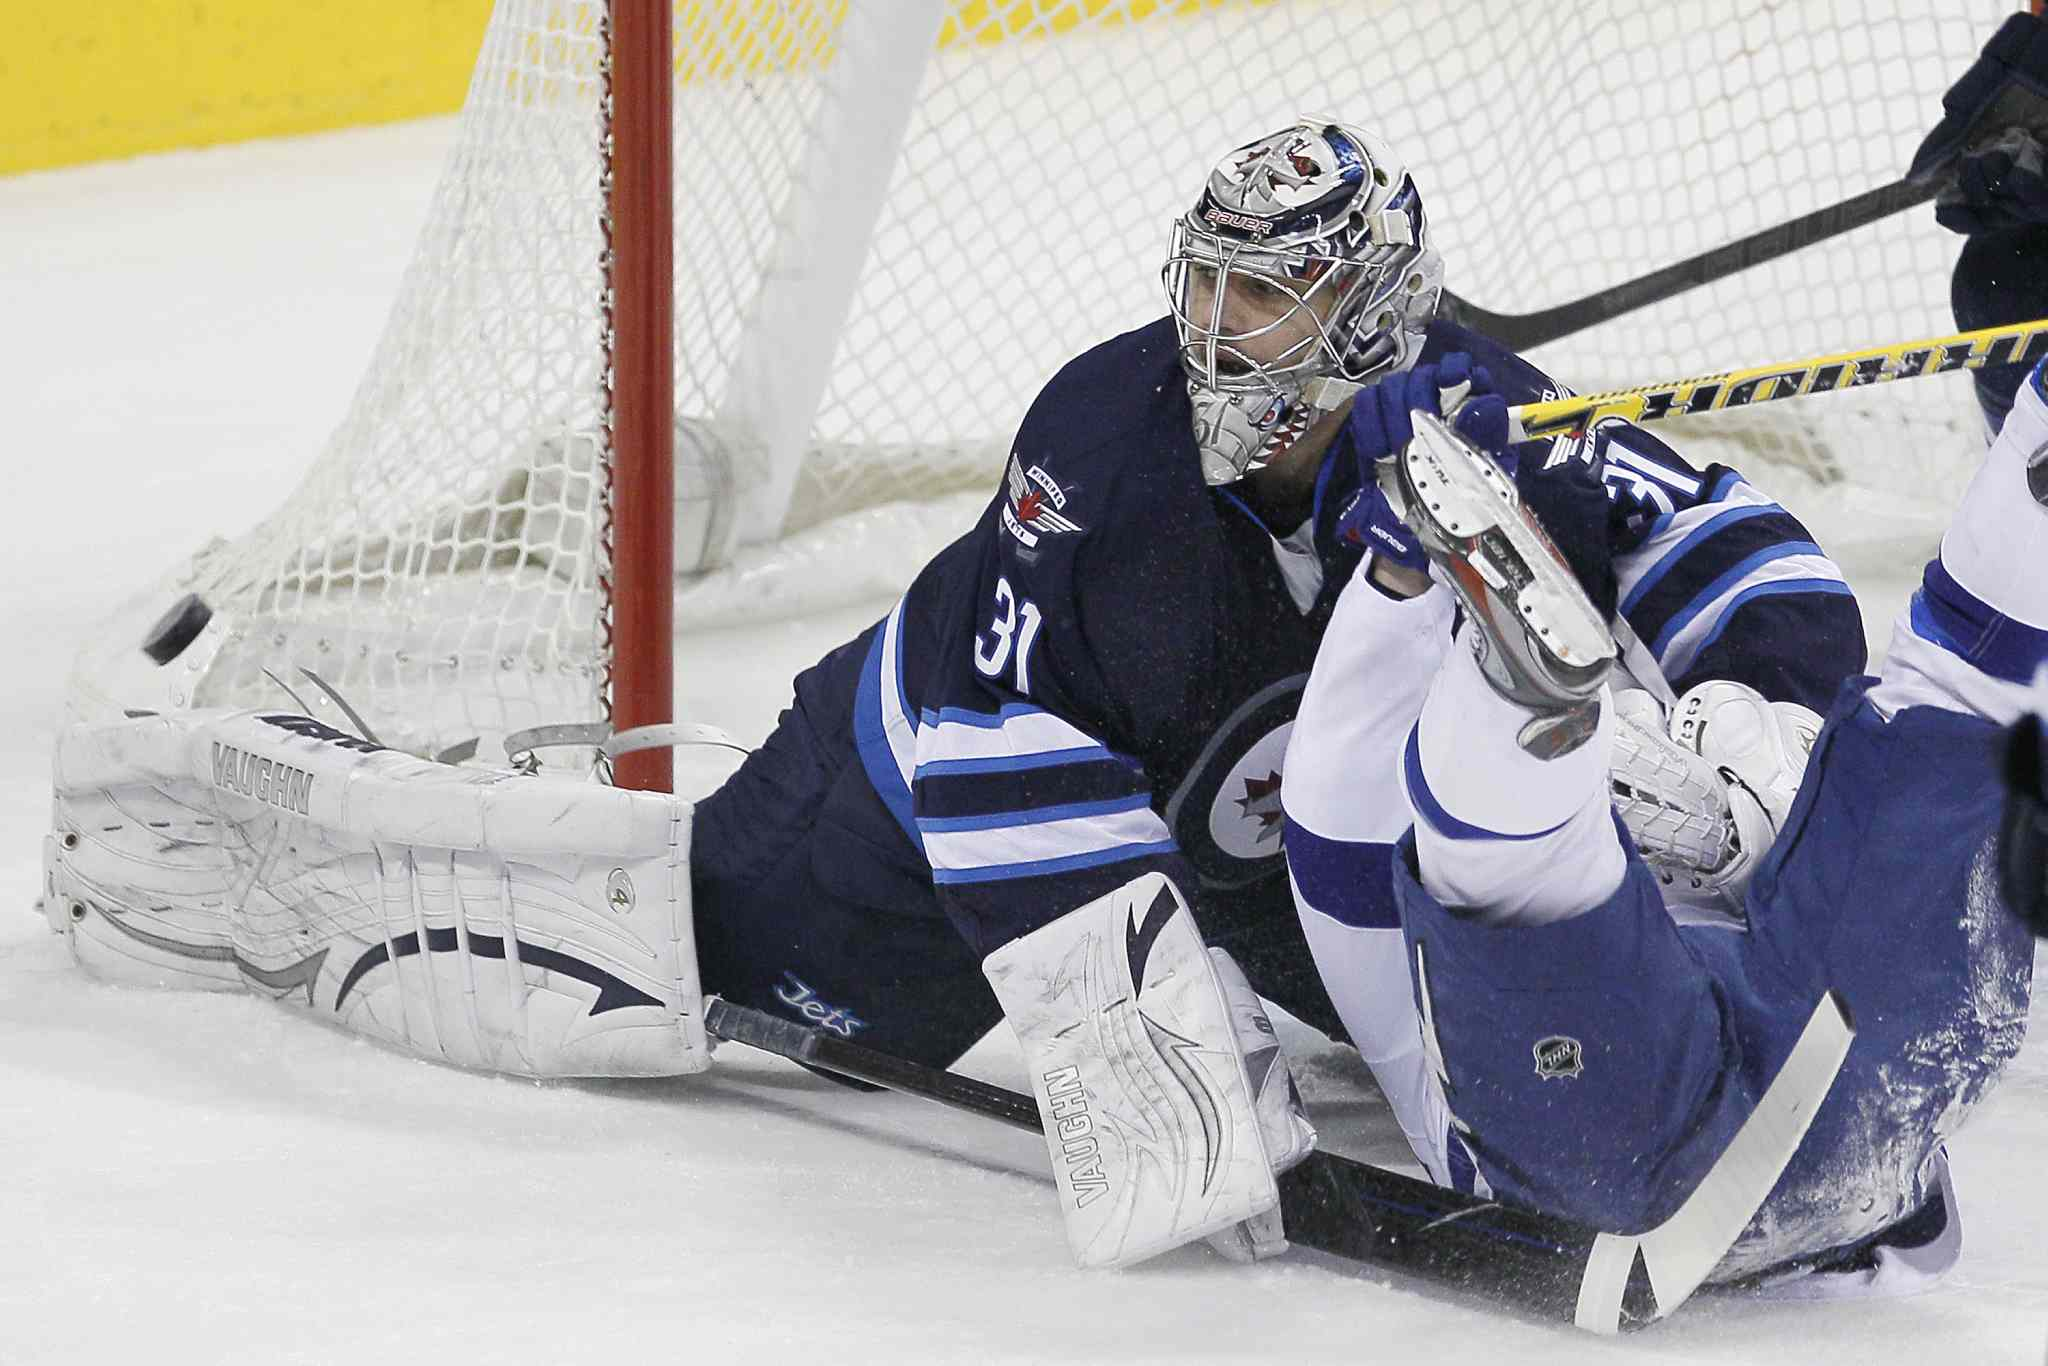 Winnipeg Jets' goaltender Ondrej Pavelec (31) saves the shot as he gets tangled up with Tampa Bay Lightning's Martin St. Louis (26) during first period NHL action in Winnipeg Tuesday.